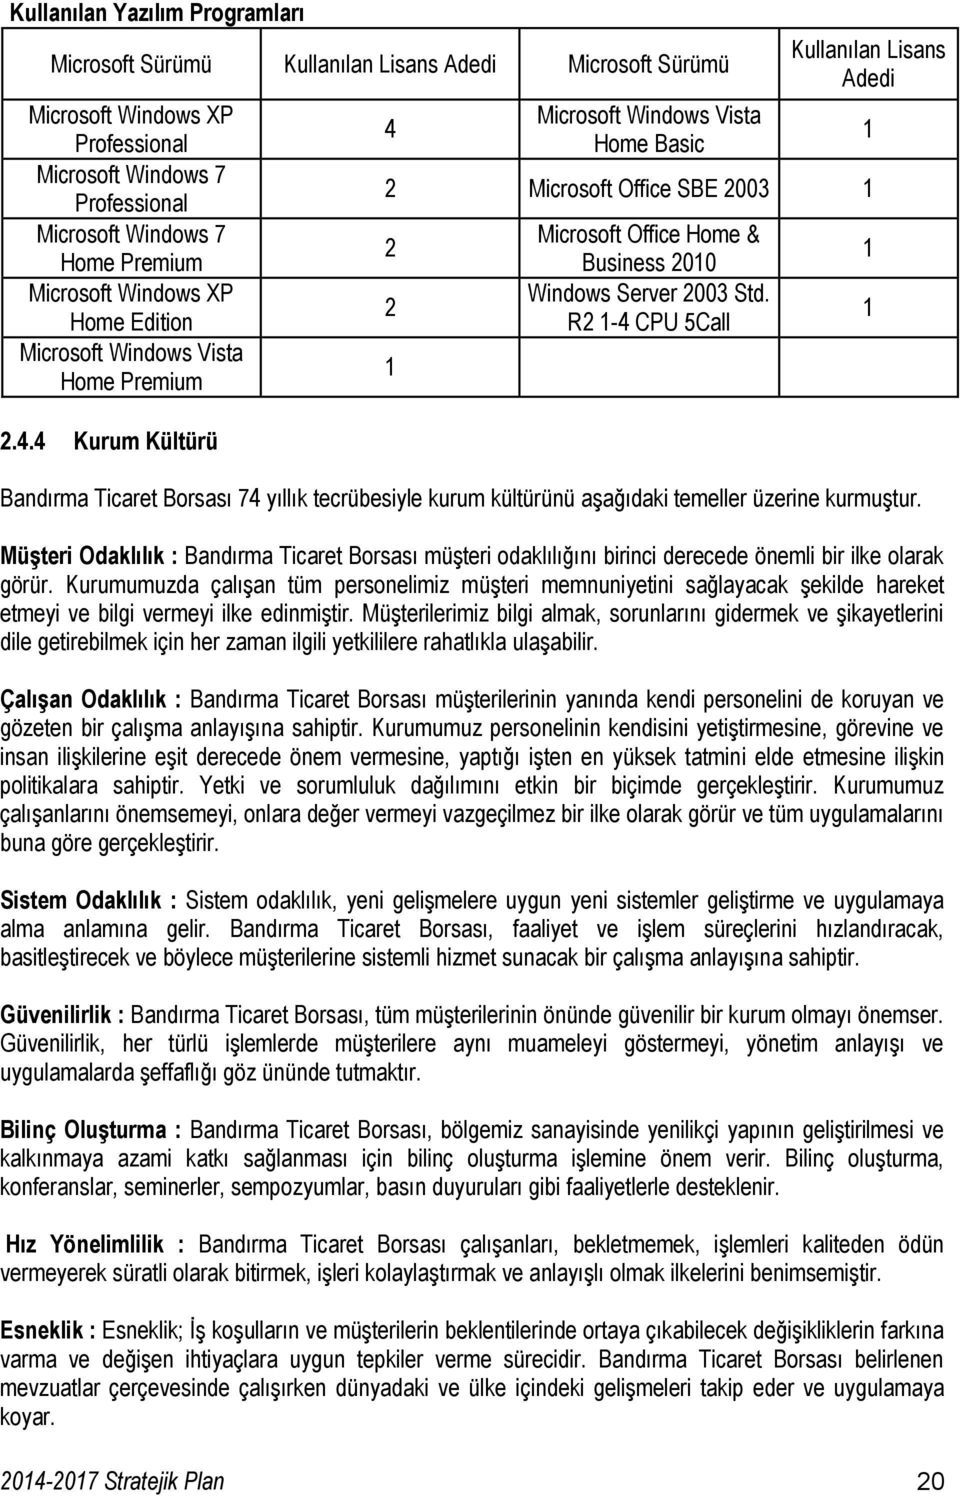 4 Kurum Kültürü 4 Microsoft Windows Vista Home Basic Kullanılan Lisans Adedi 2 Microsoft Office SBE 2003 1 2 2 1 Microsoft Office Home & Business 2010 Windows Server 2003 Std.